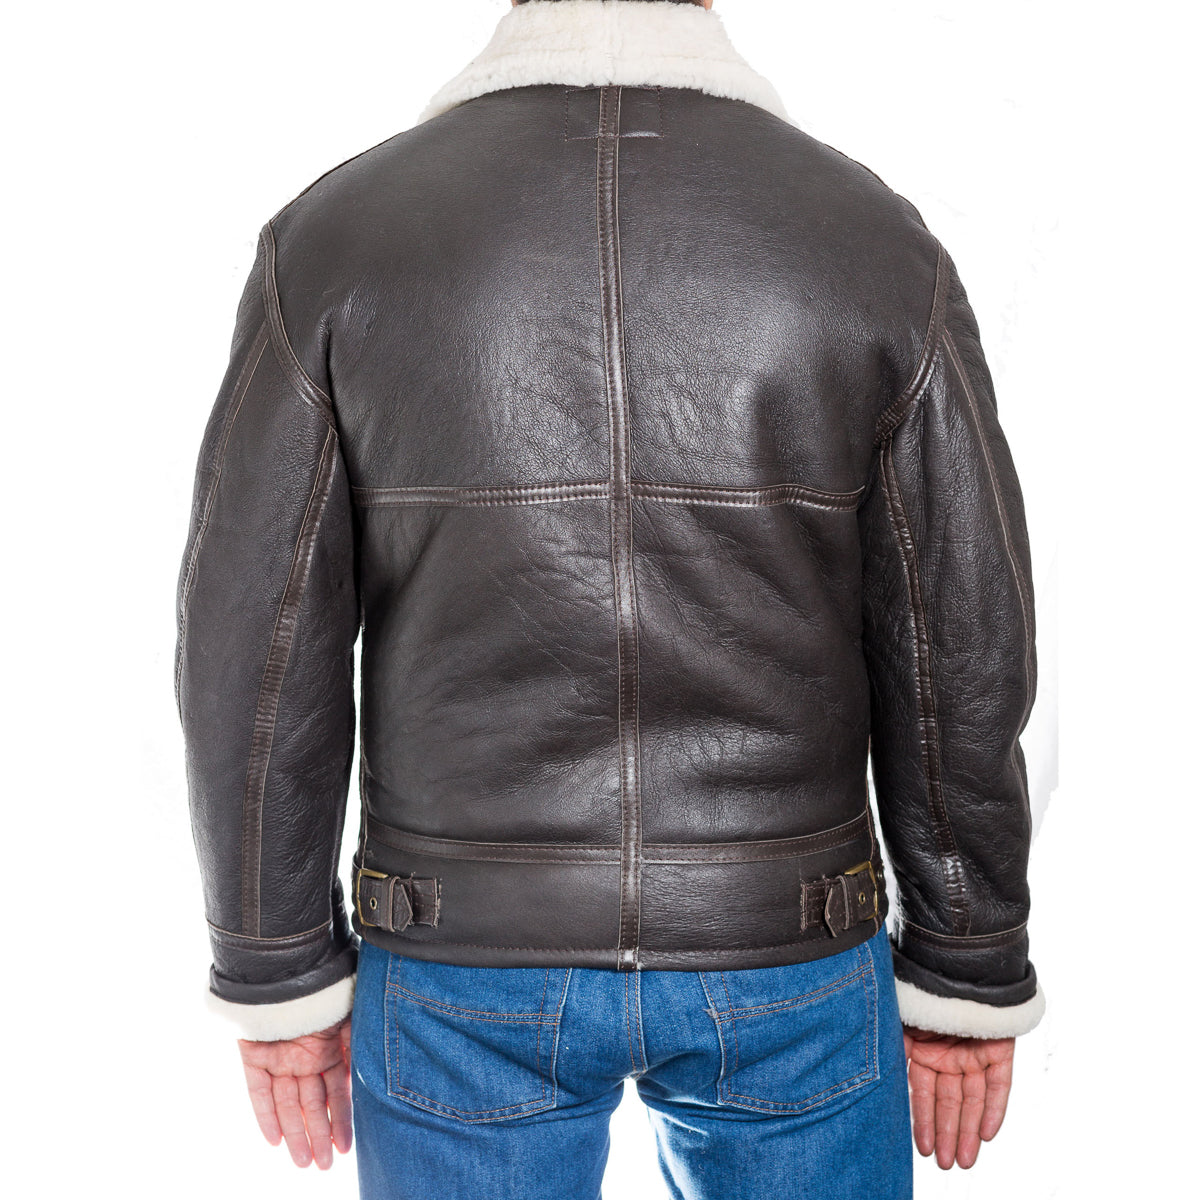 Mens leather flying aviator winter jacket with sheepskin lining.